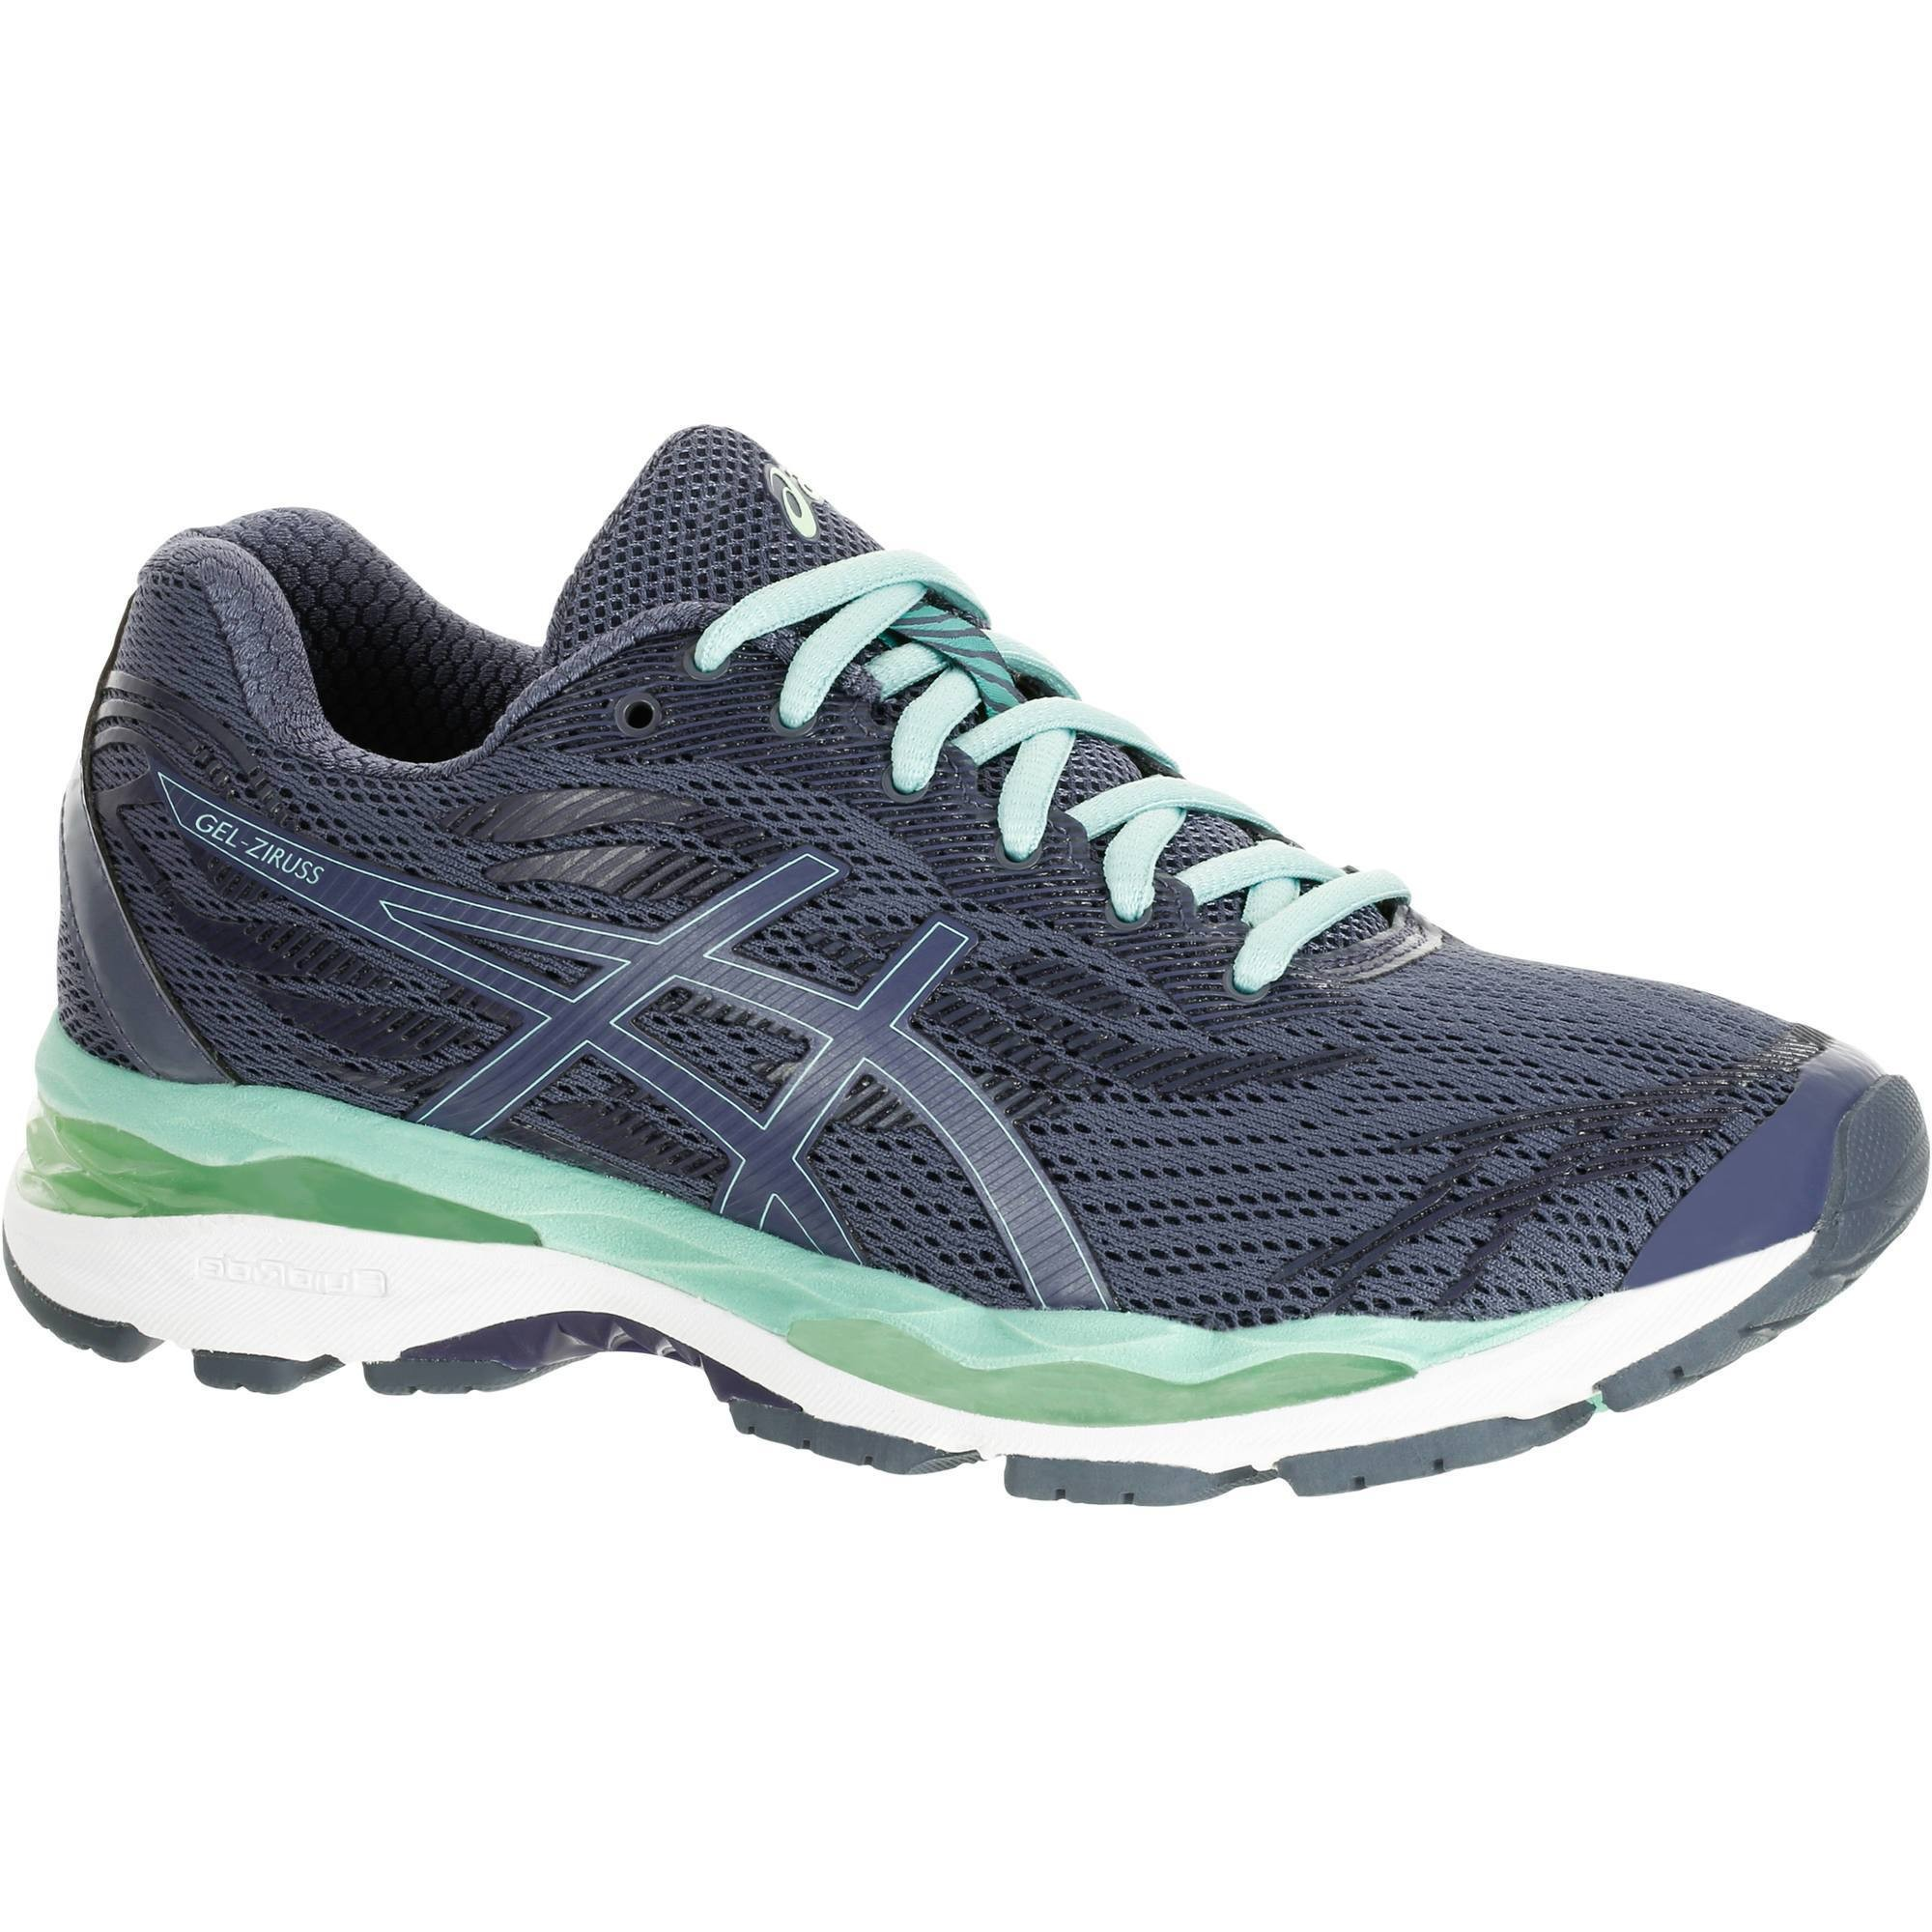 Course Chaussures Pied Pokxzitu À Asics XTOiPZkwu